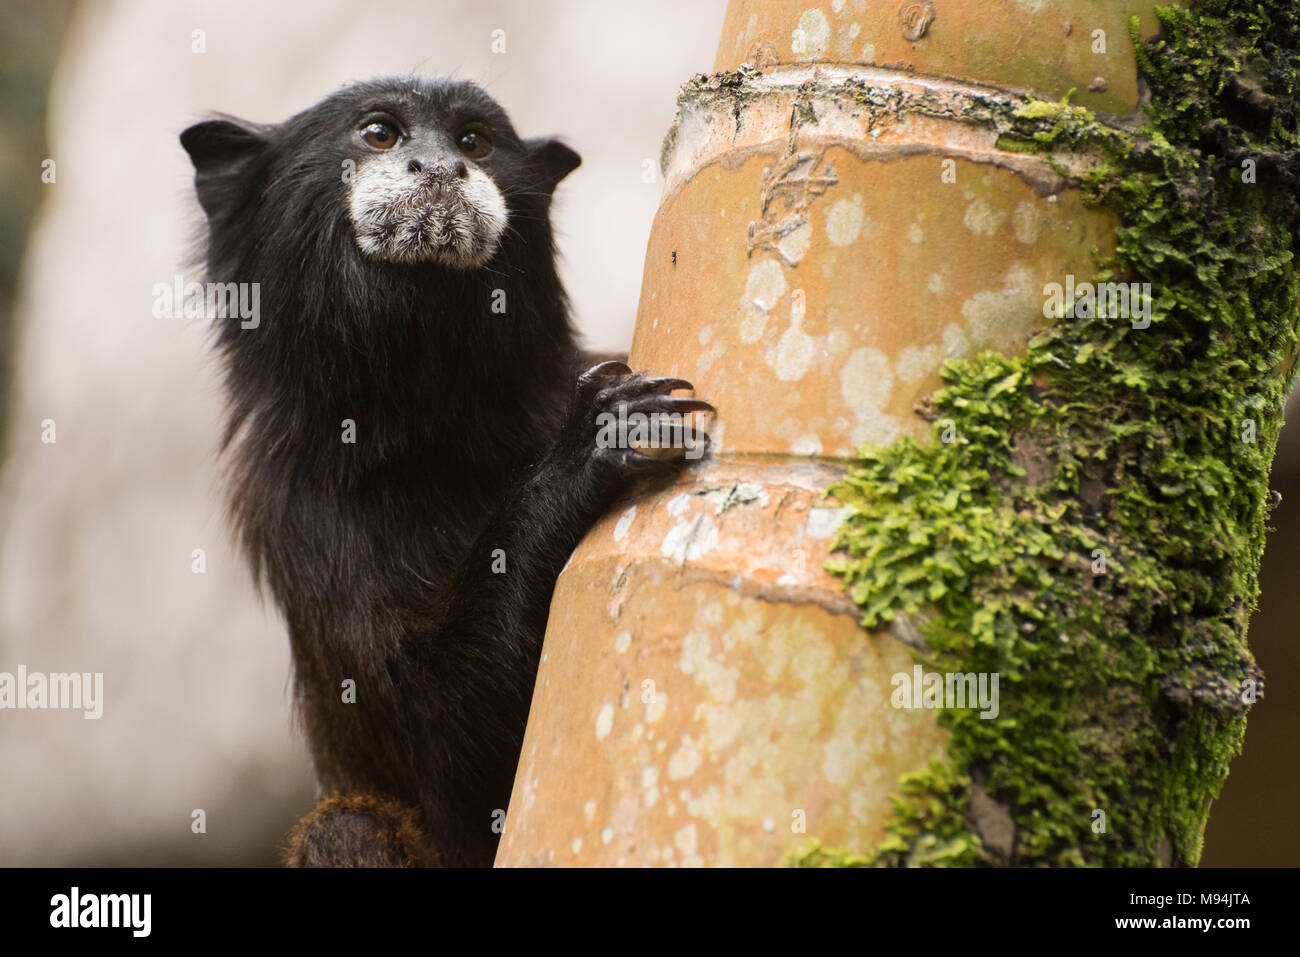 A cute and wild saddle-back tamarin, Saguinus fuscicollis, peeking around a tree trunk to see where the others have gone. Stock Photo